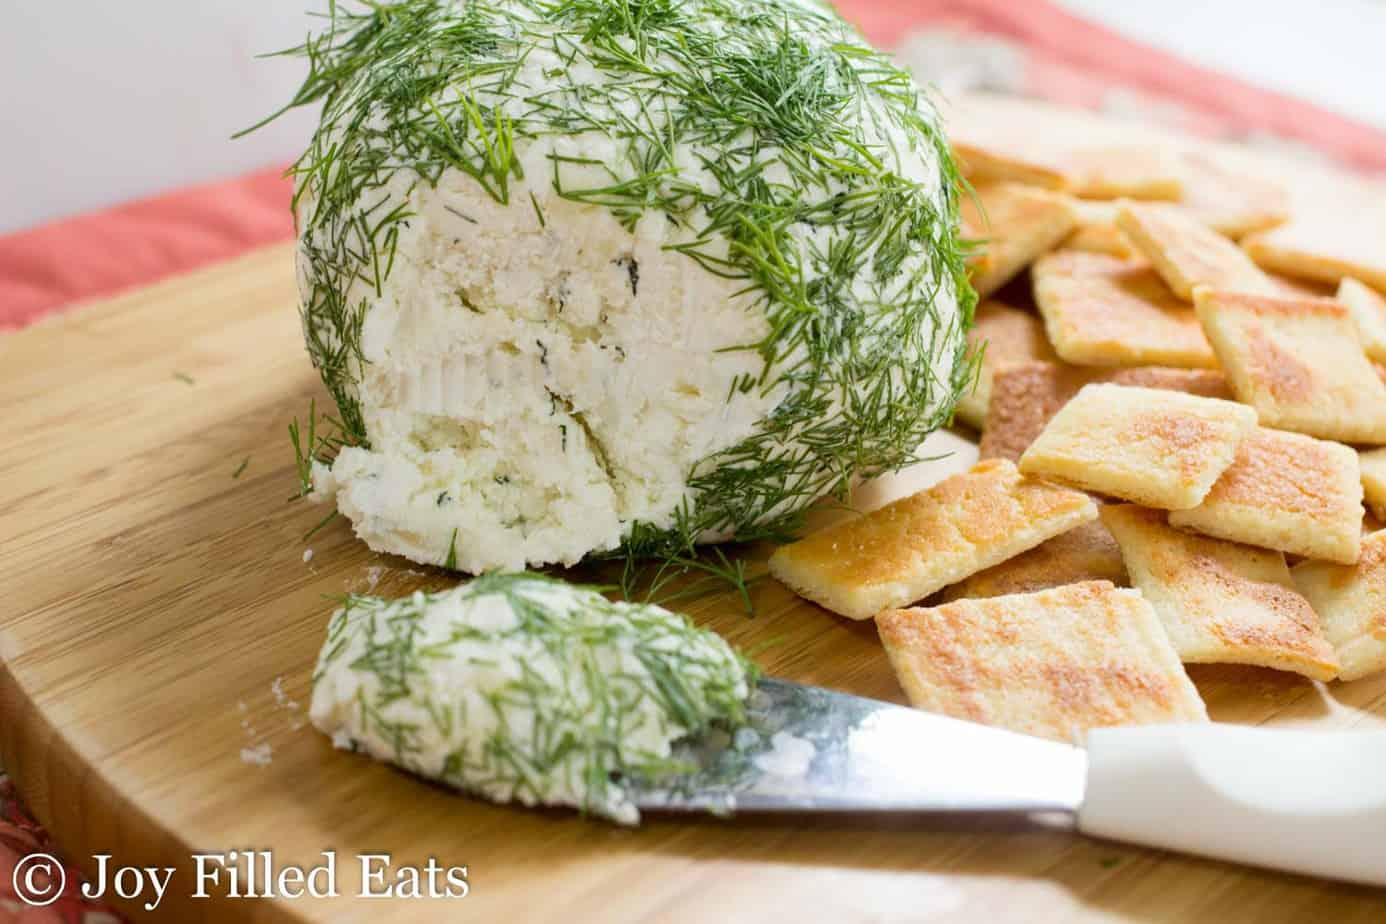 large ball of feta and dill cheese set on a cutting board next to a cheese knife with a slice of cheese ball on it